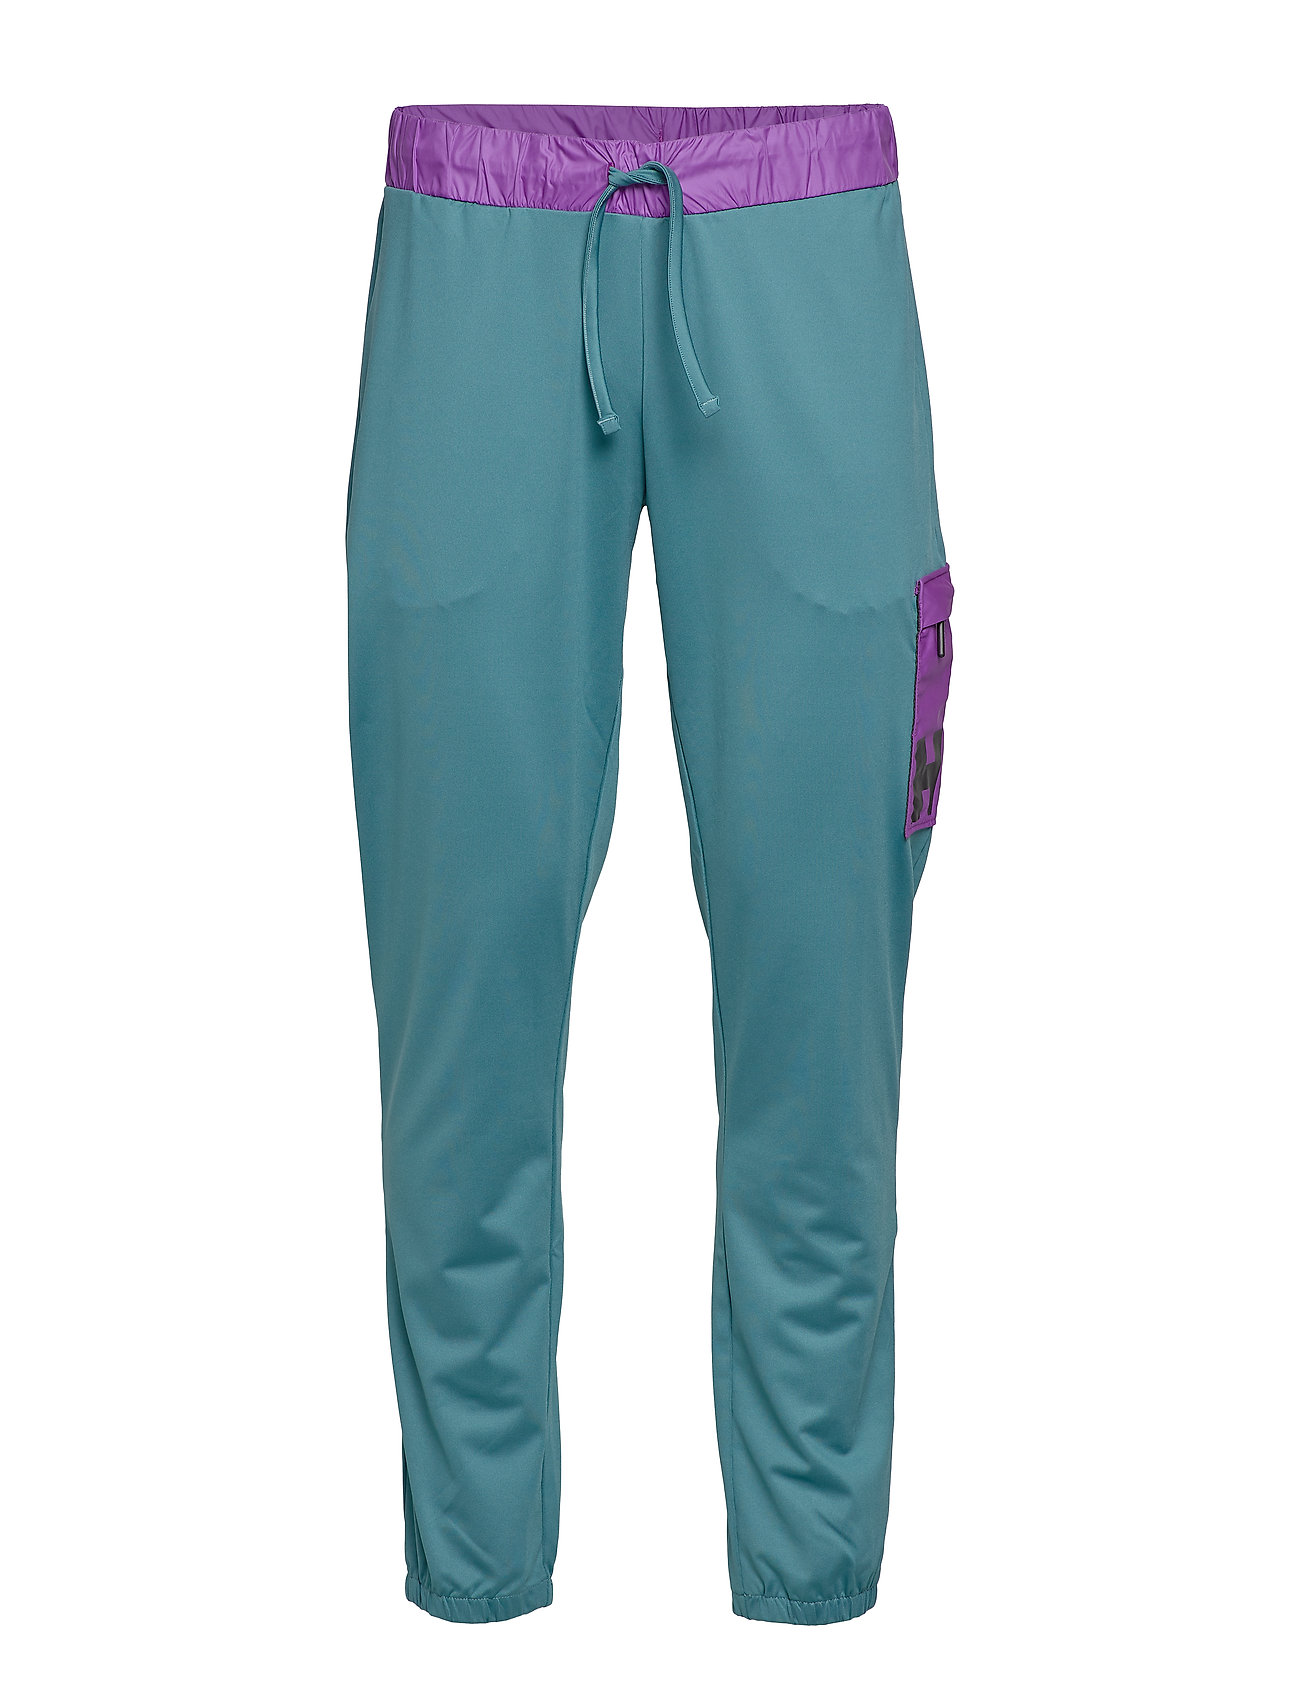 Helly Hansen P&C PANTS - WASHED TEAL